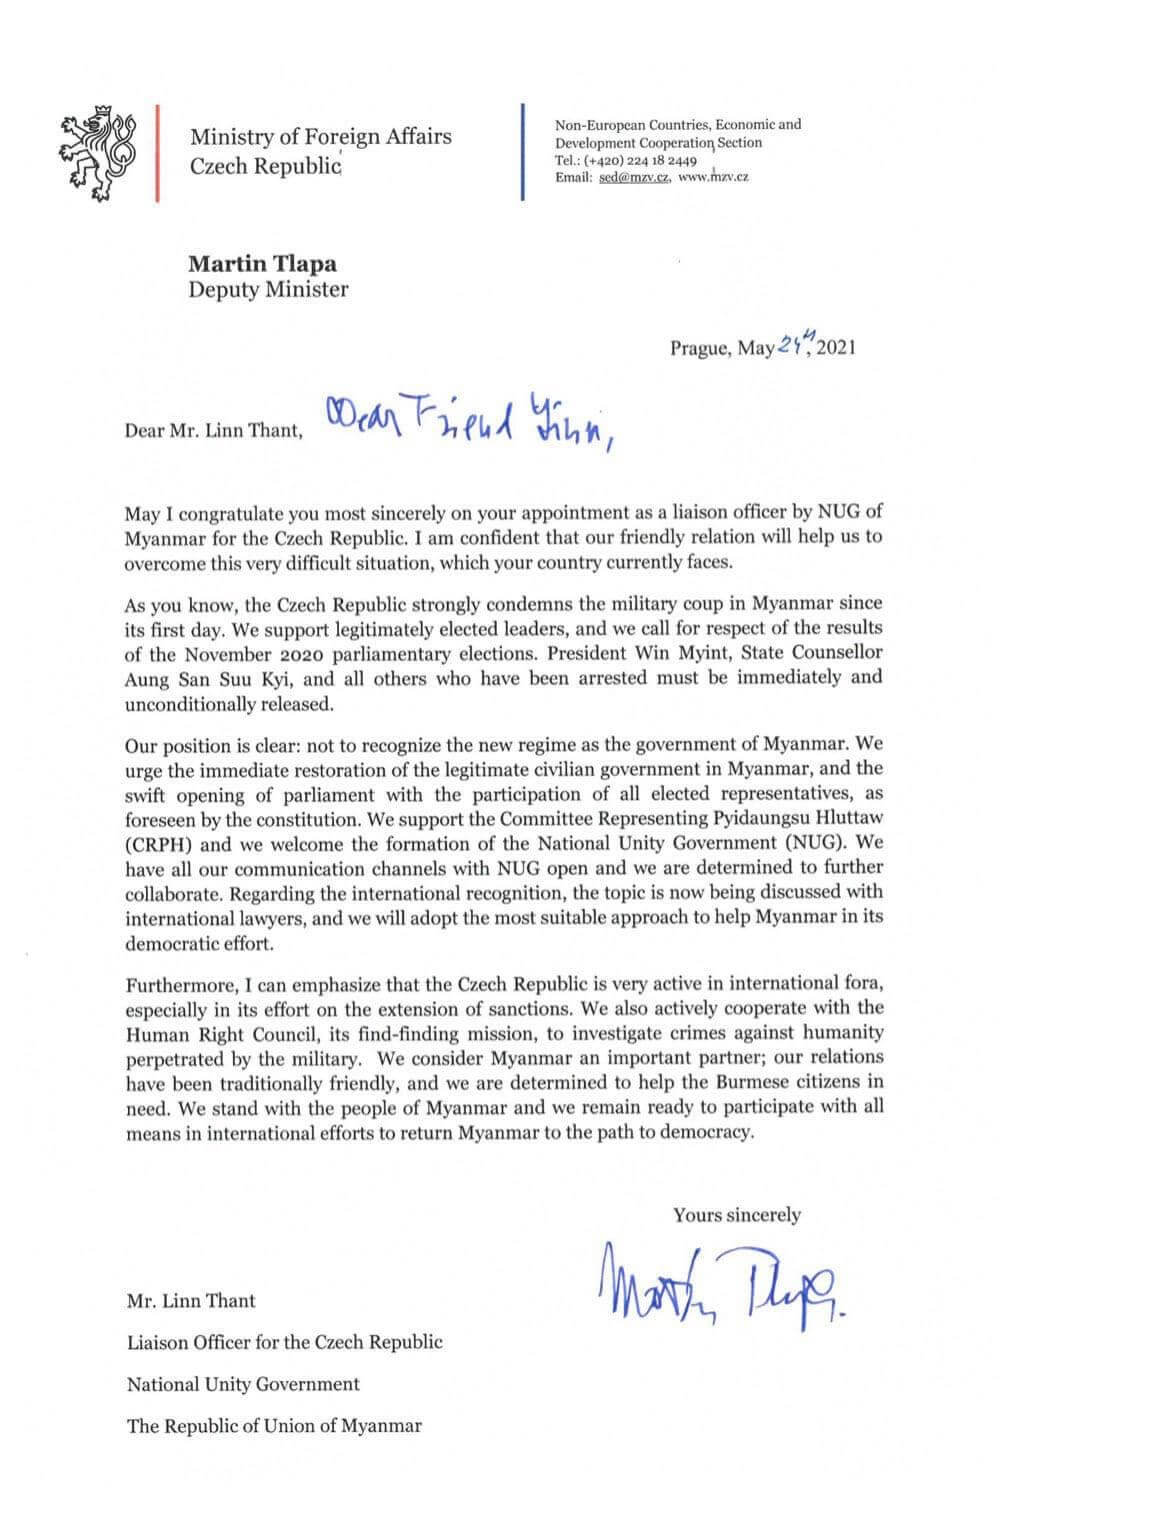 H.E. Mr. Martin Tlapa, Deputy Foreign Minister of the Czech Republic, sent a letter of recognition to U Lin Thant as a Liaison Officer of the NUG to the Czech Republic